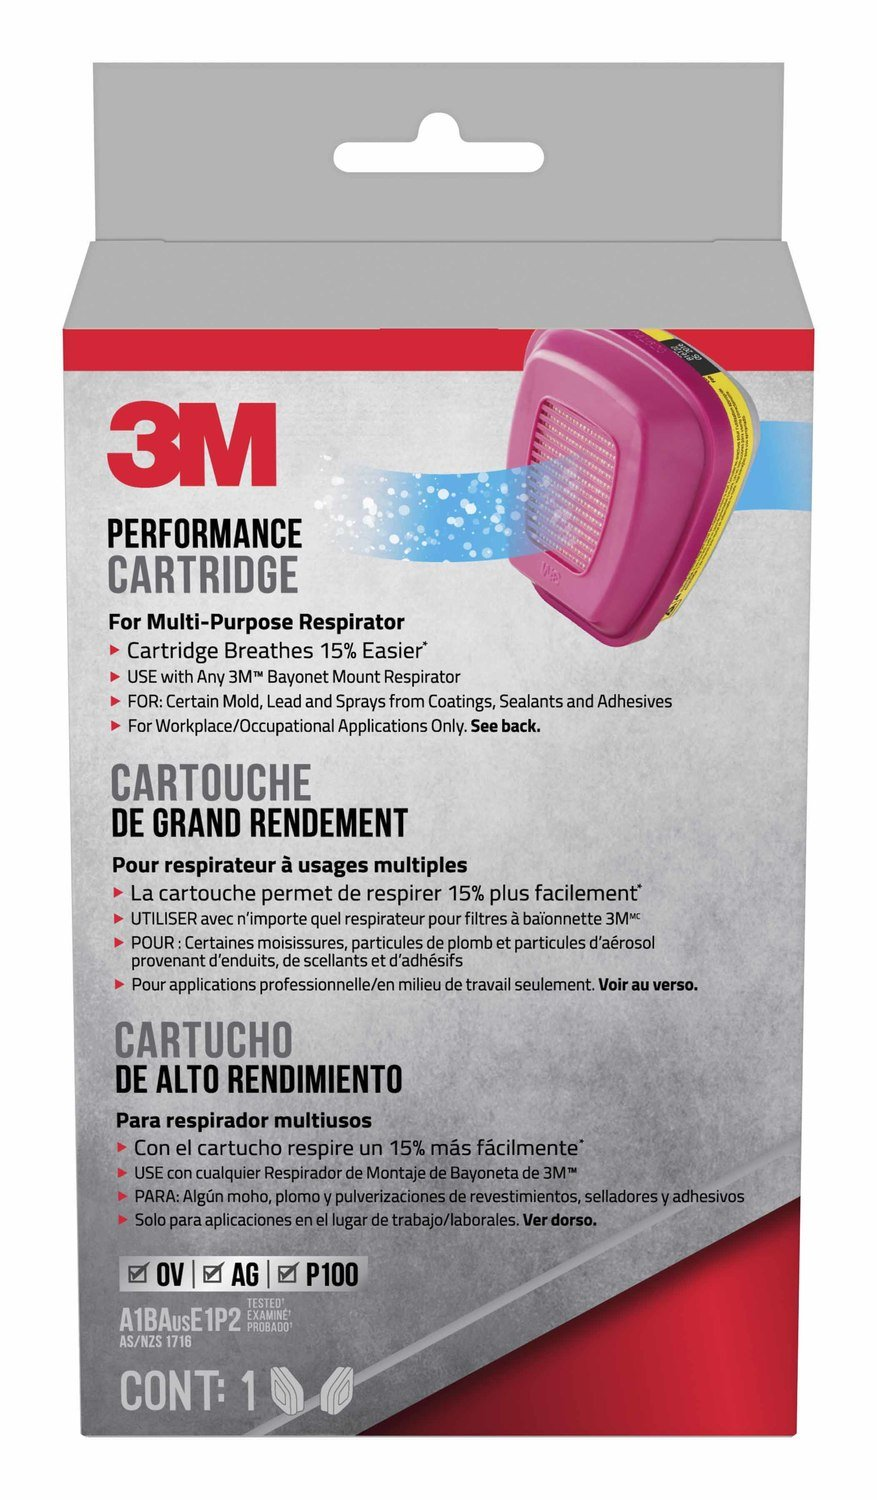 3M 60923HB1-C Replacement Cartridges for Professional Multi-Purpose Respirator (Packaging may vary)